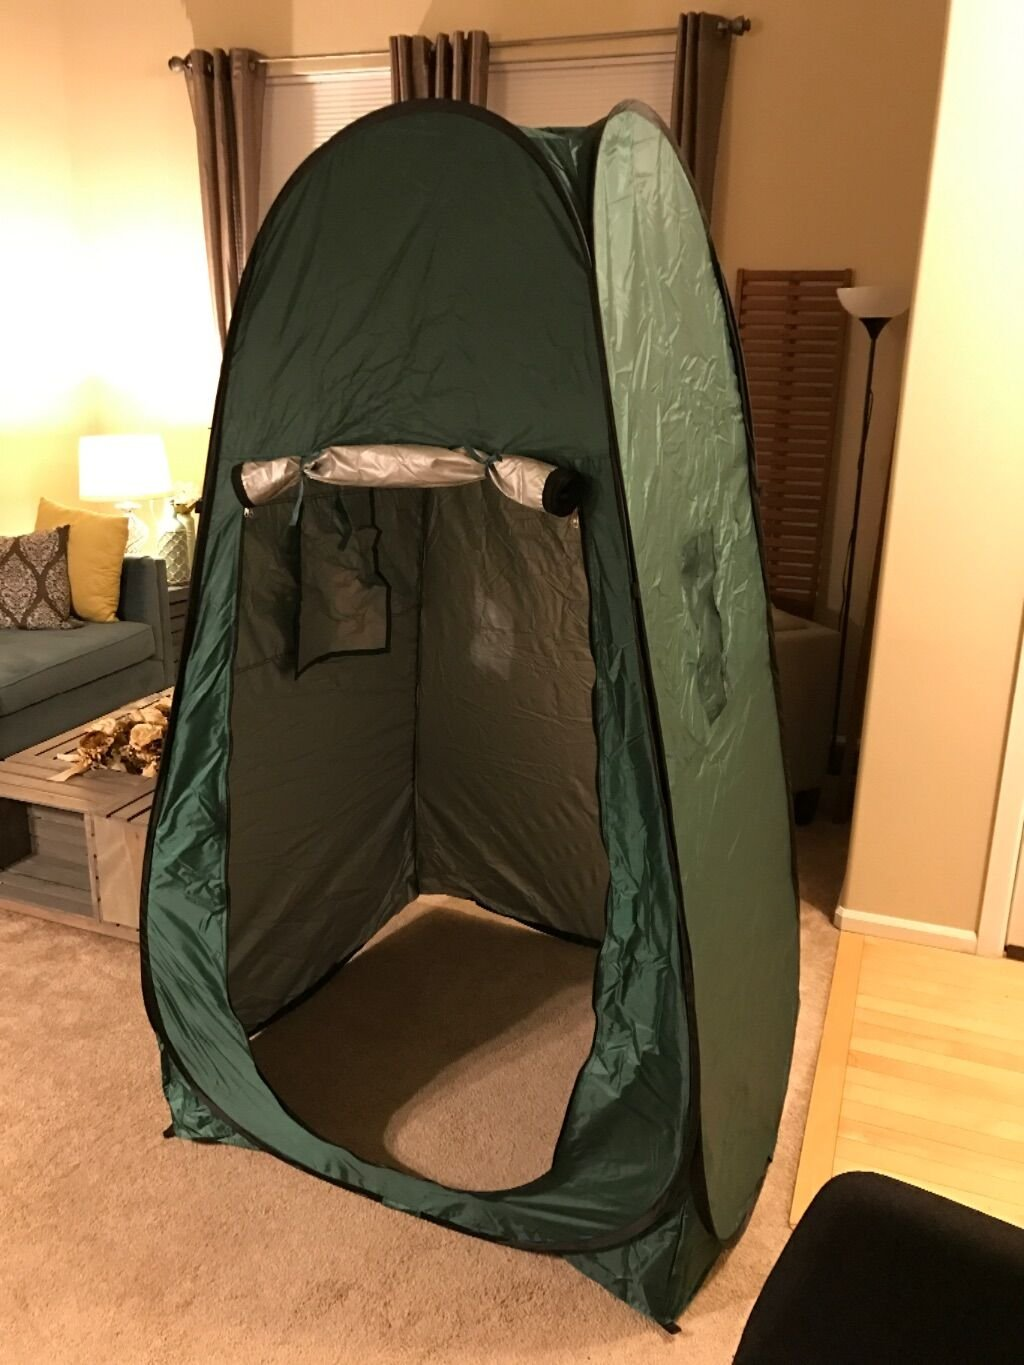 Outdoor Shower Tent, Instant pop-up pod Dressing Tents, Waterproof Portable Camping Toilet Changing Room - with window - Beach Privy Shelters Bathing Fitting Tent, with Carrying Bag (Navy Green)